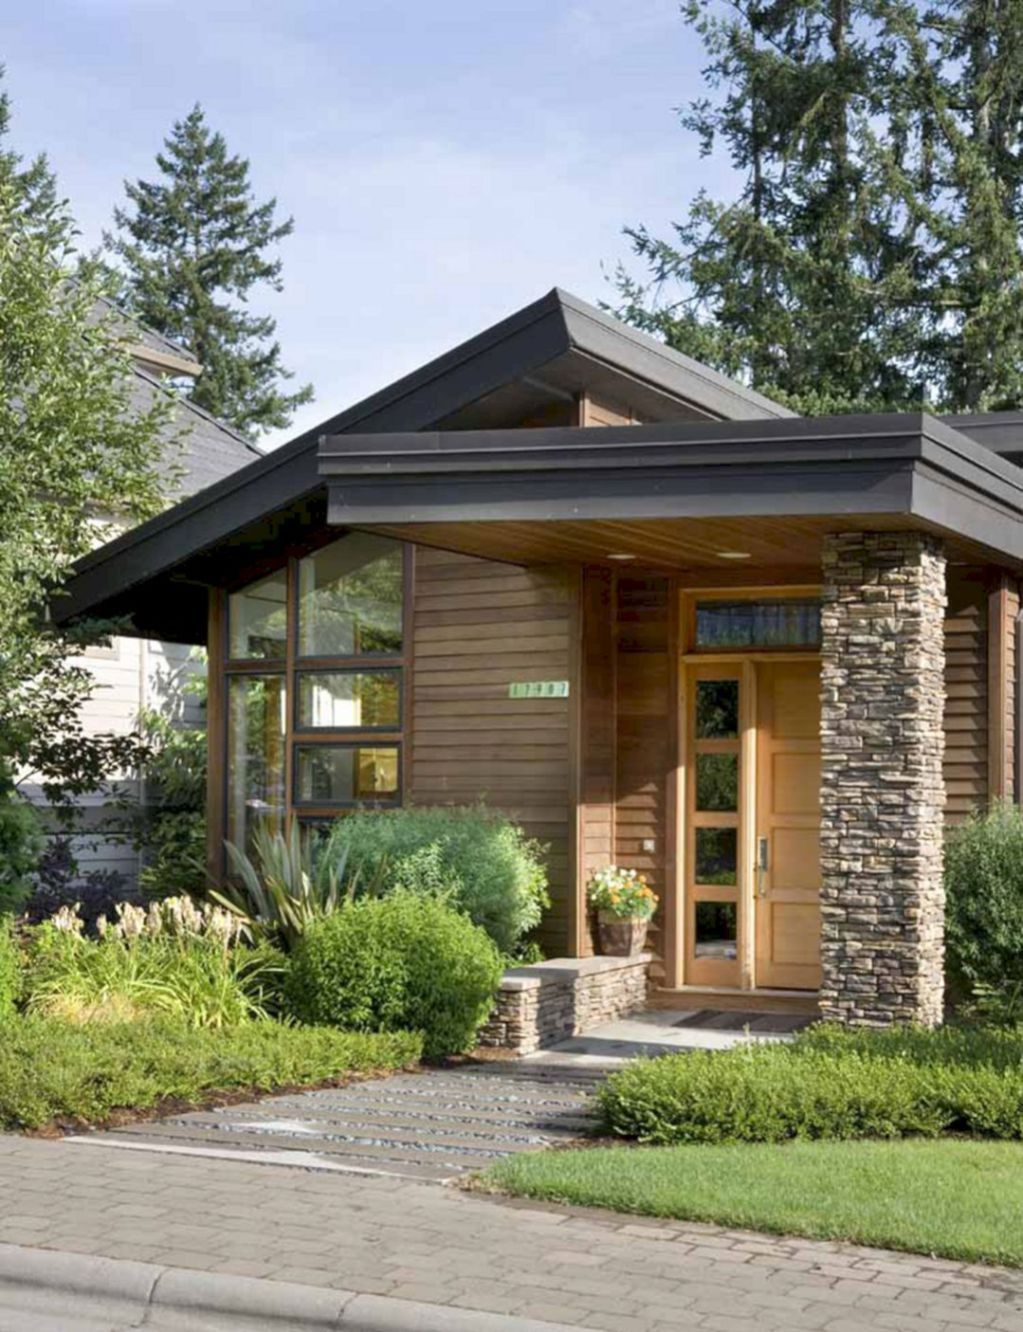 the best modern tiny house design small homes inspirations on best tiny house plan design ideas id=54633